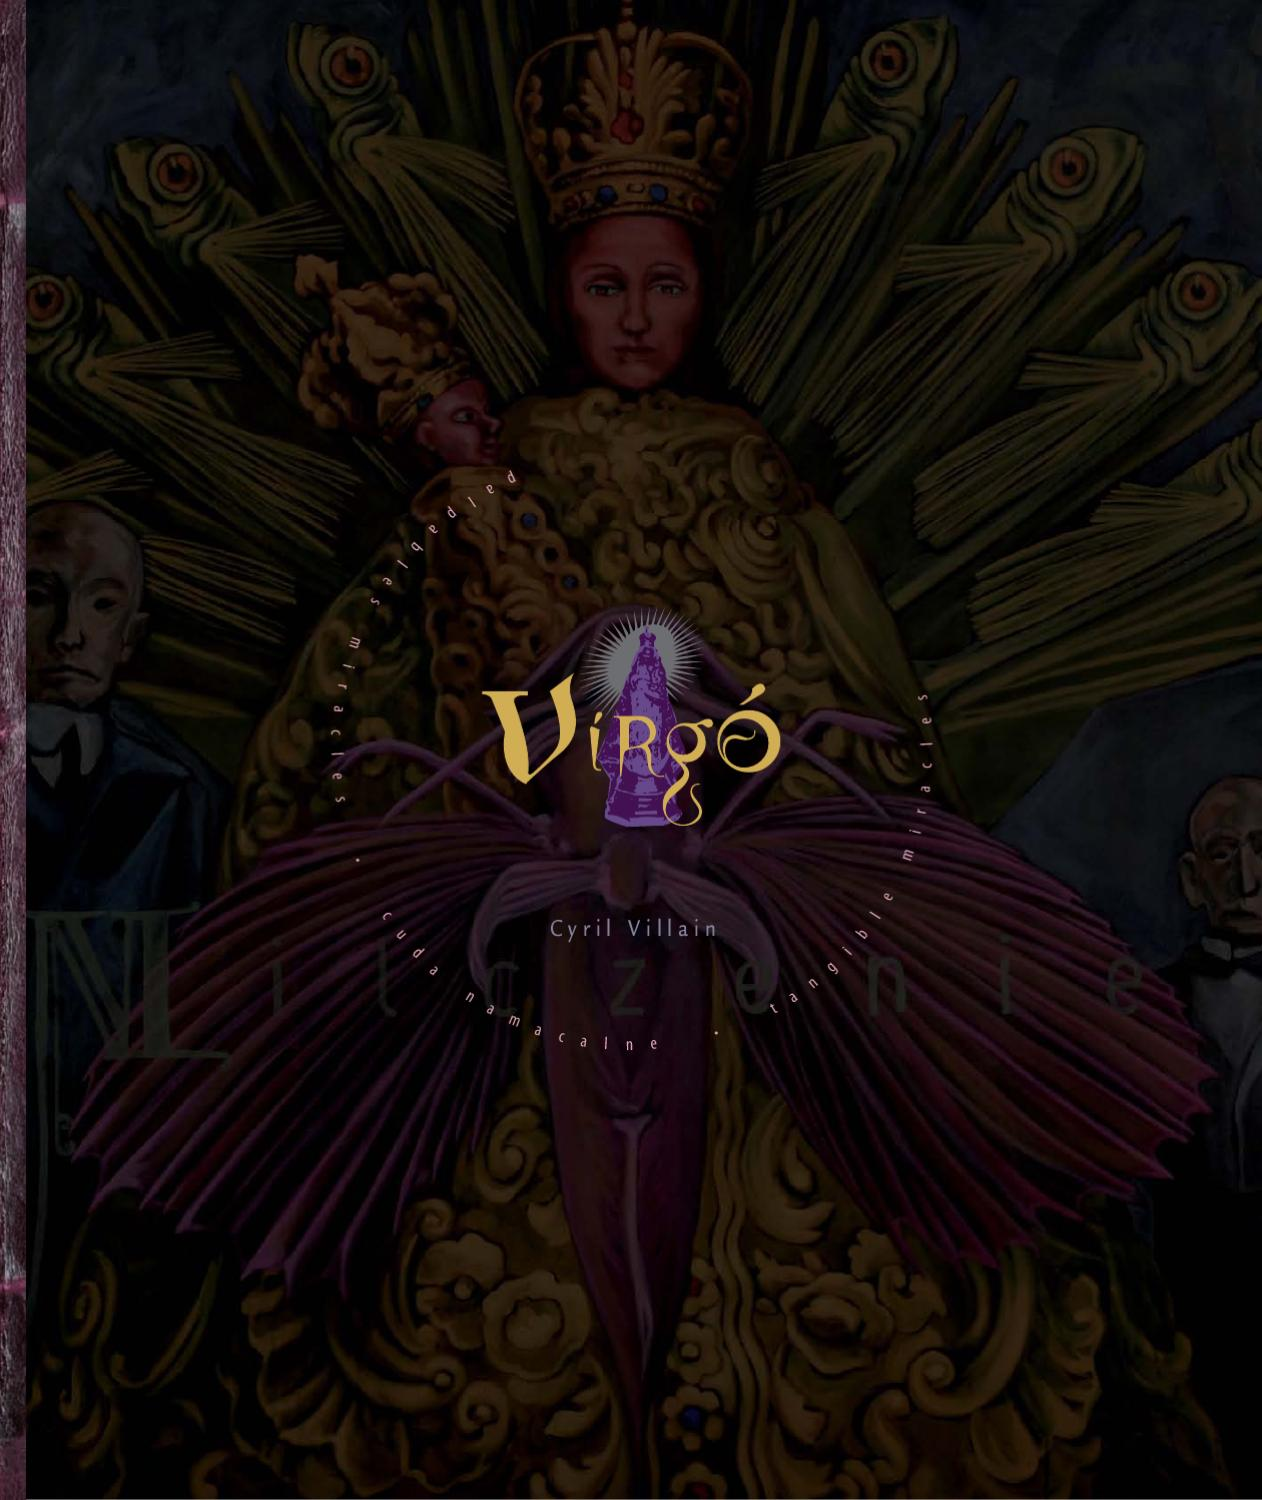 Issuu Cyril Virgo Cyril Villain Cyril Virgo By By Issuu By Virgo Villain Villain VMSUpqzG